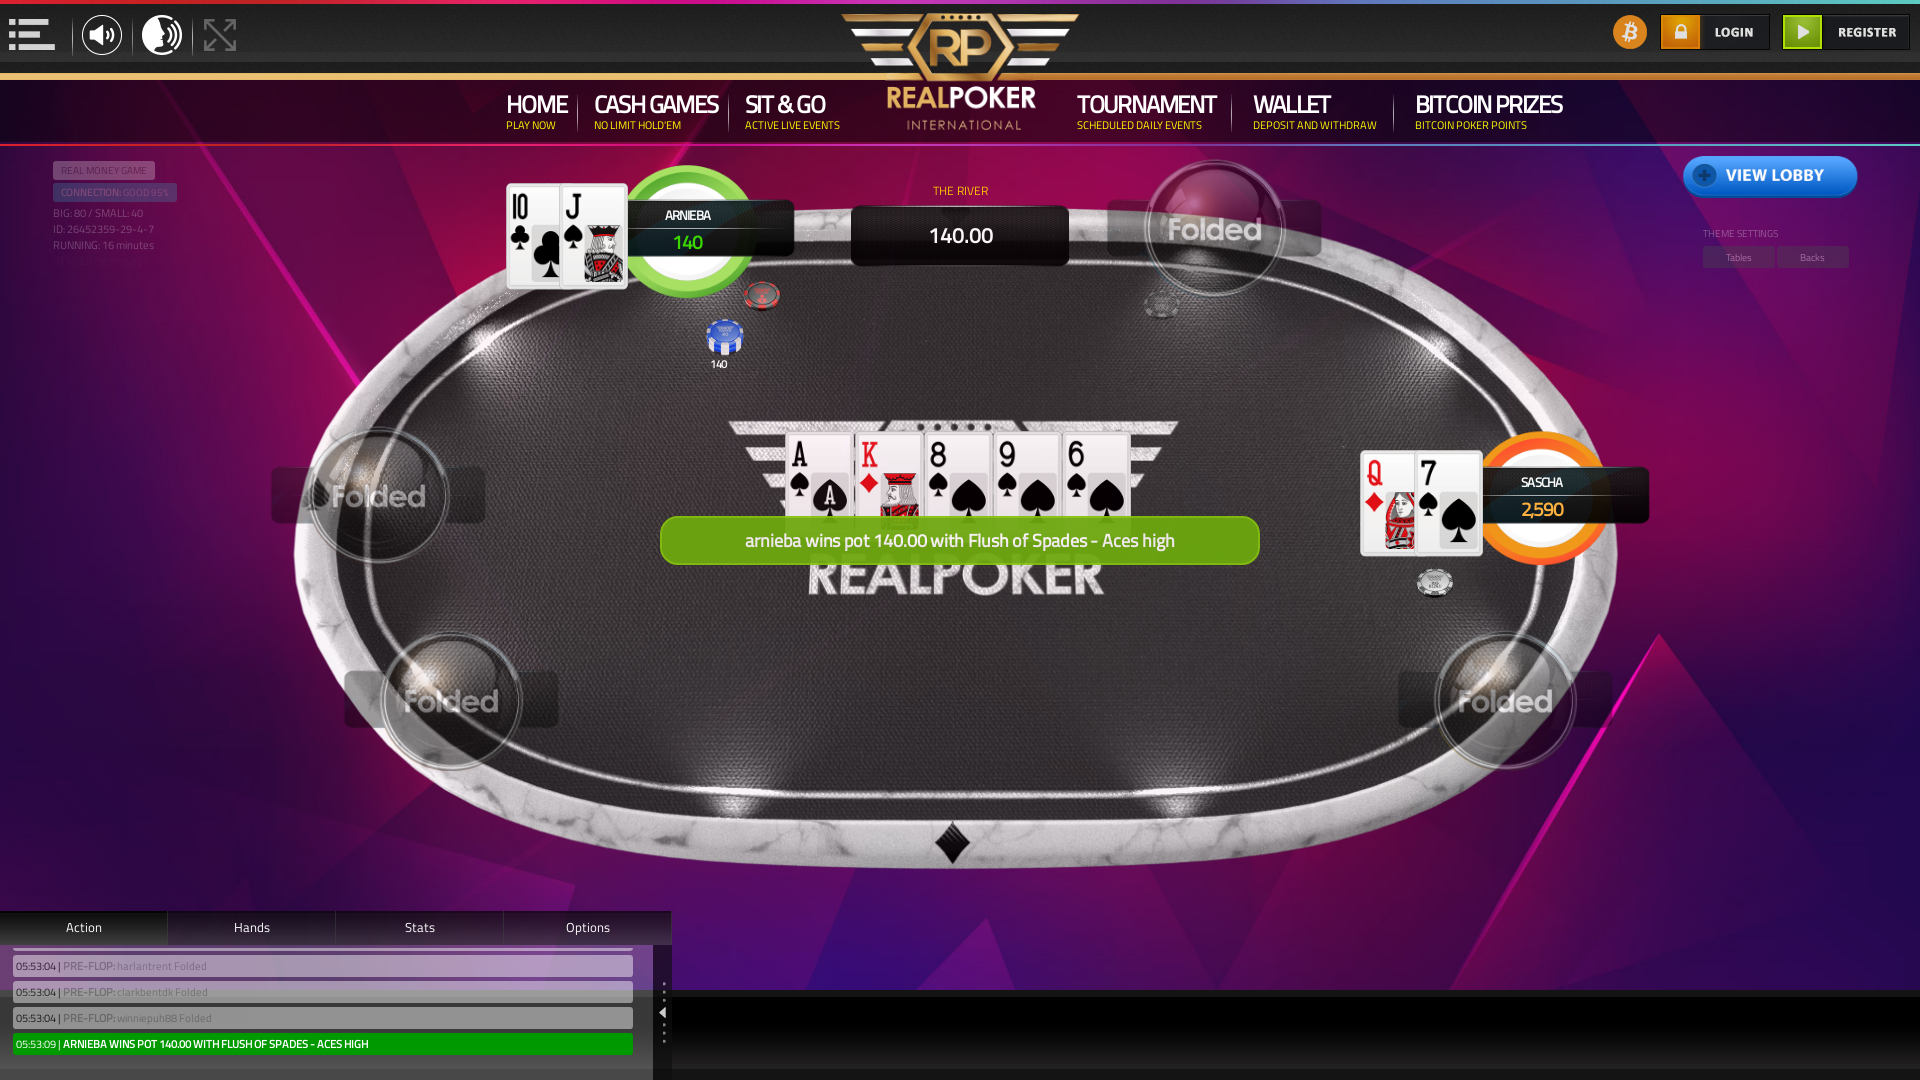 10 player texas holdem table at real poker with the table id 26452359